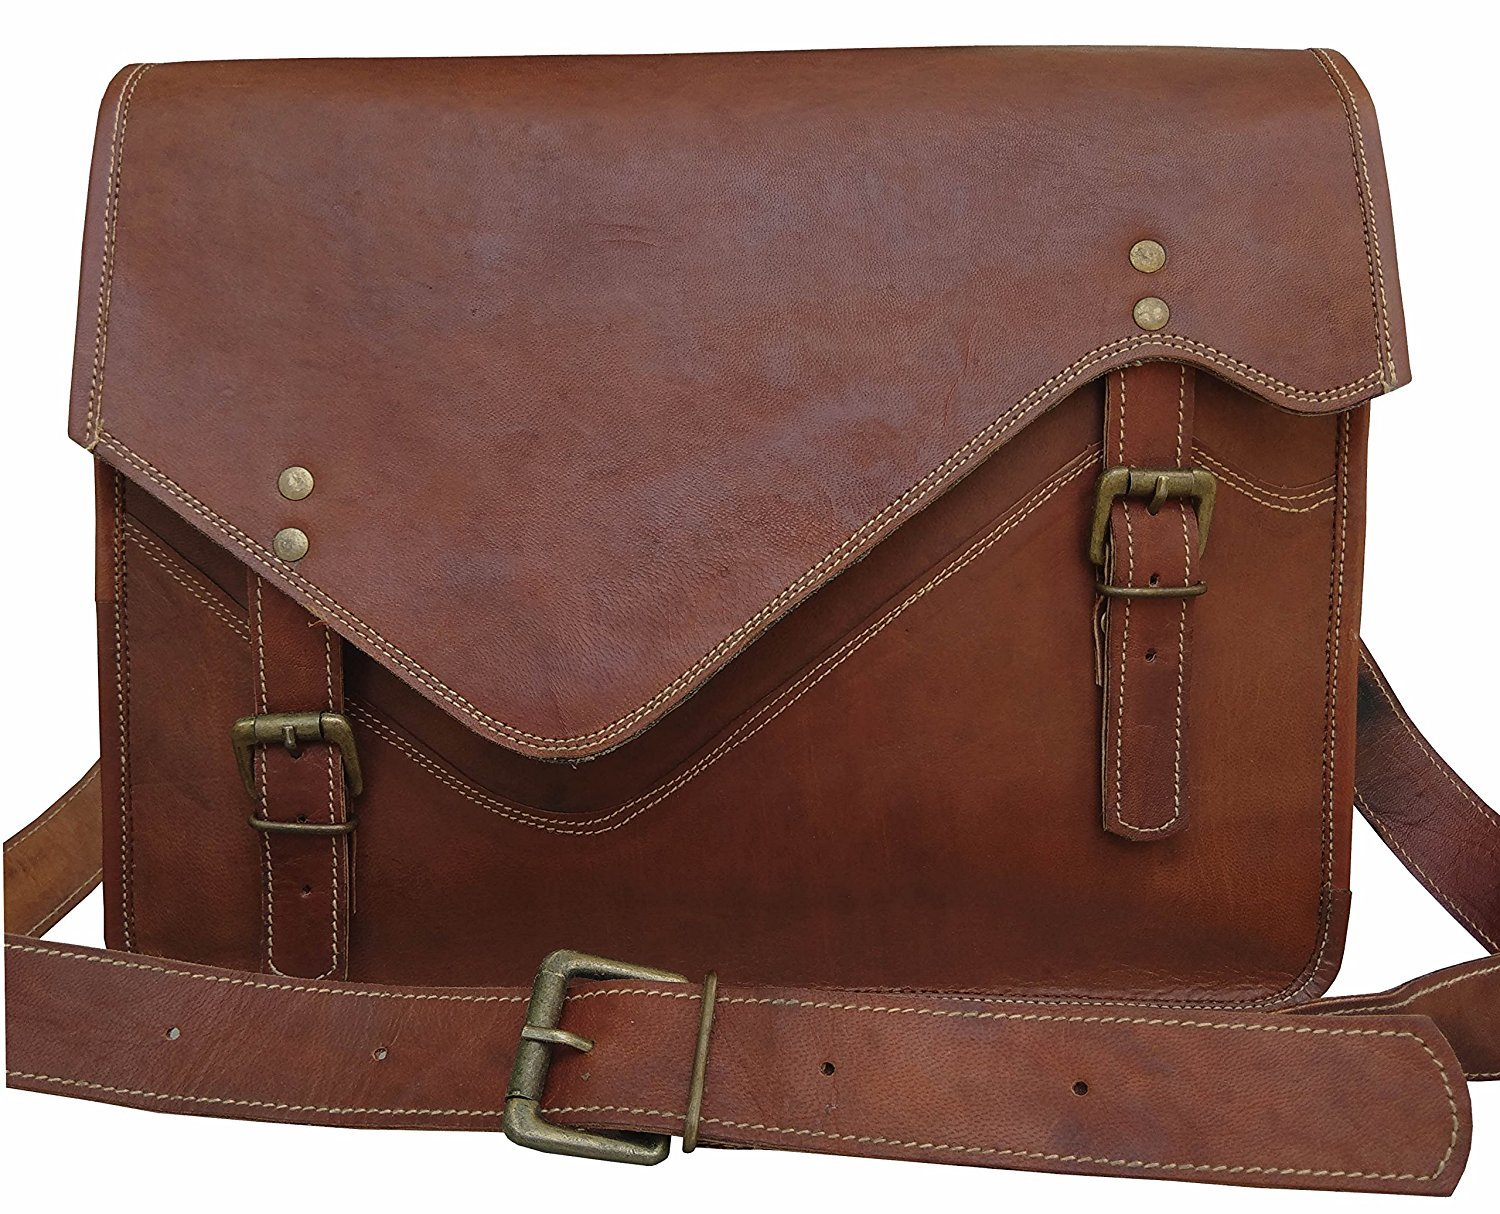 VINTAGE COUTURE Leather Vintage 15 Inch Laptop Messenger Bag briefcase Satchel for Men and Women plastic